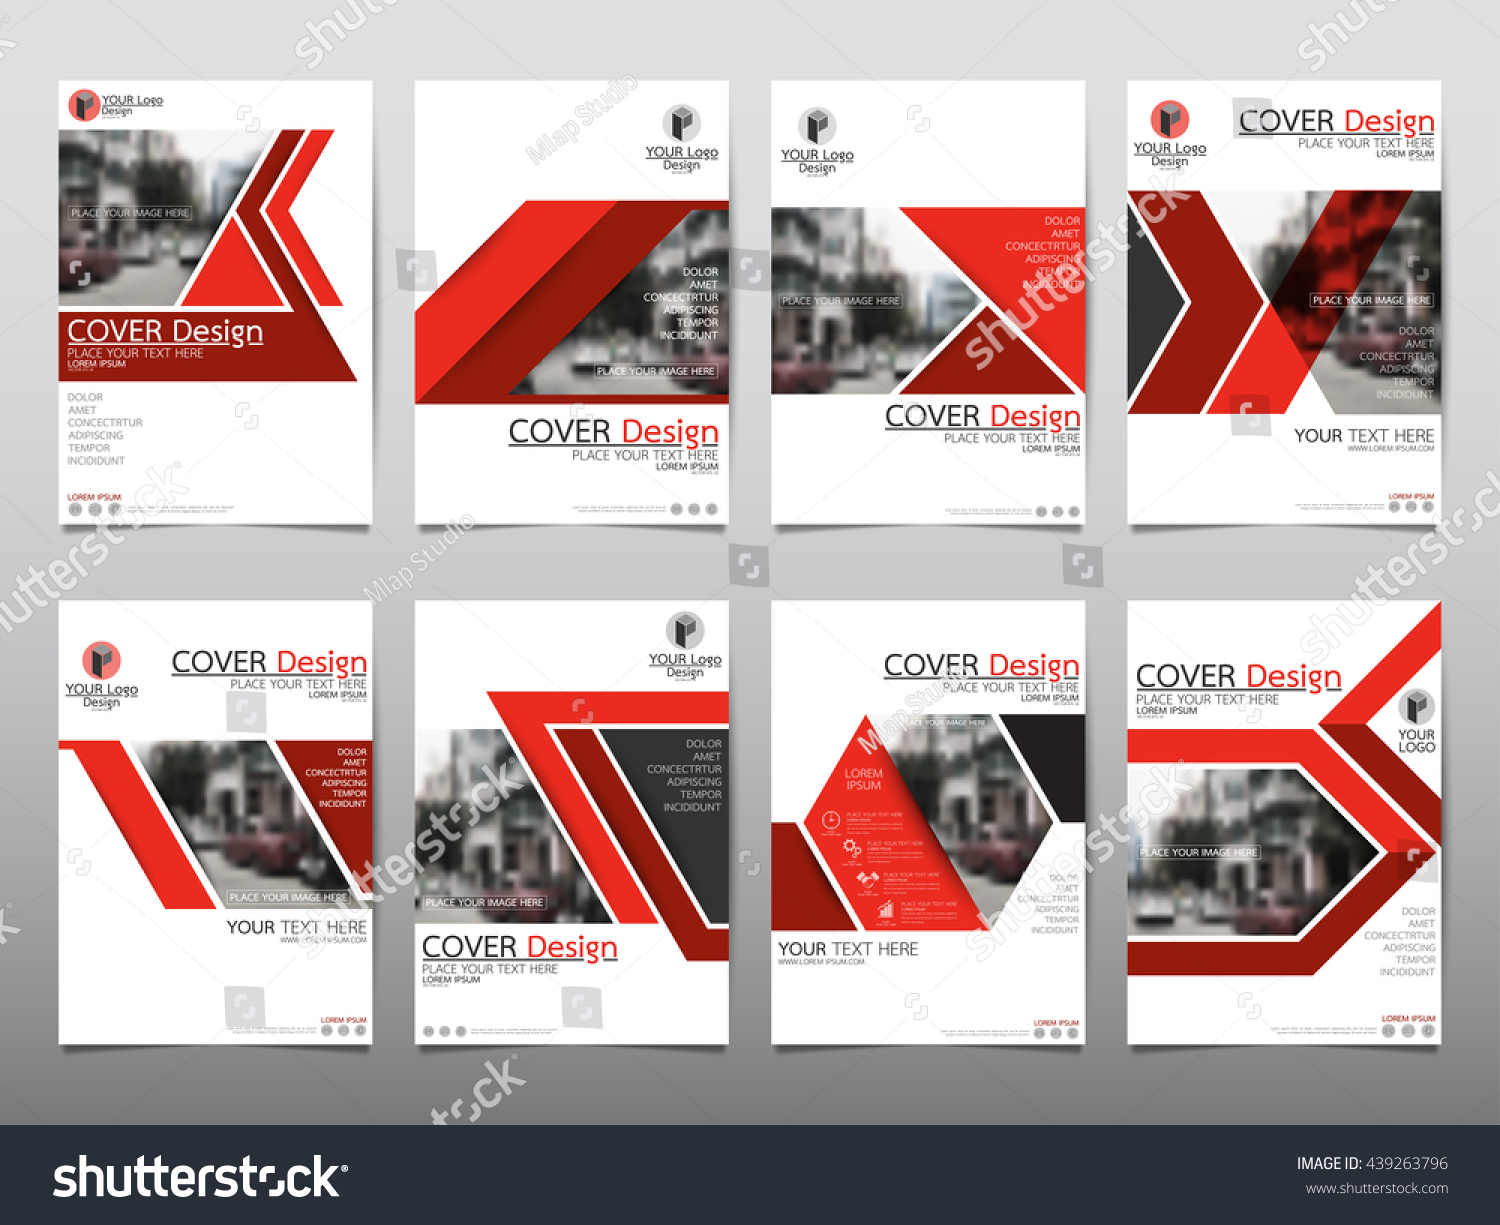 red business technology annual report brochure stock vector red business technology annual report brochure flyer design template vector leaflet cover presentation abstract geometric